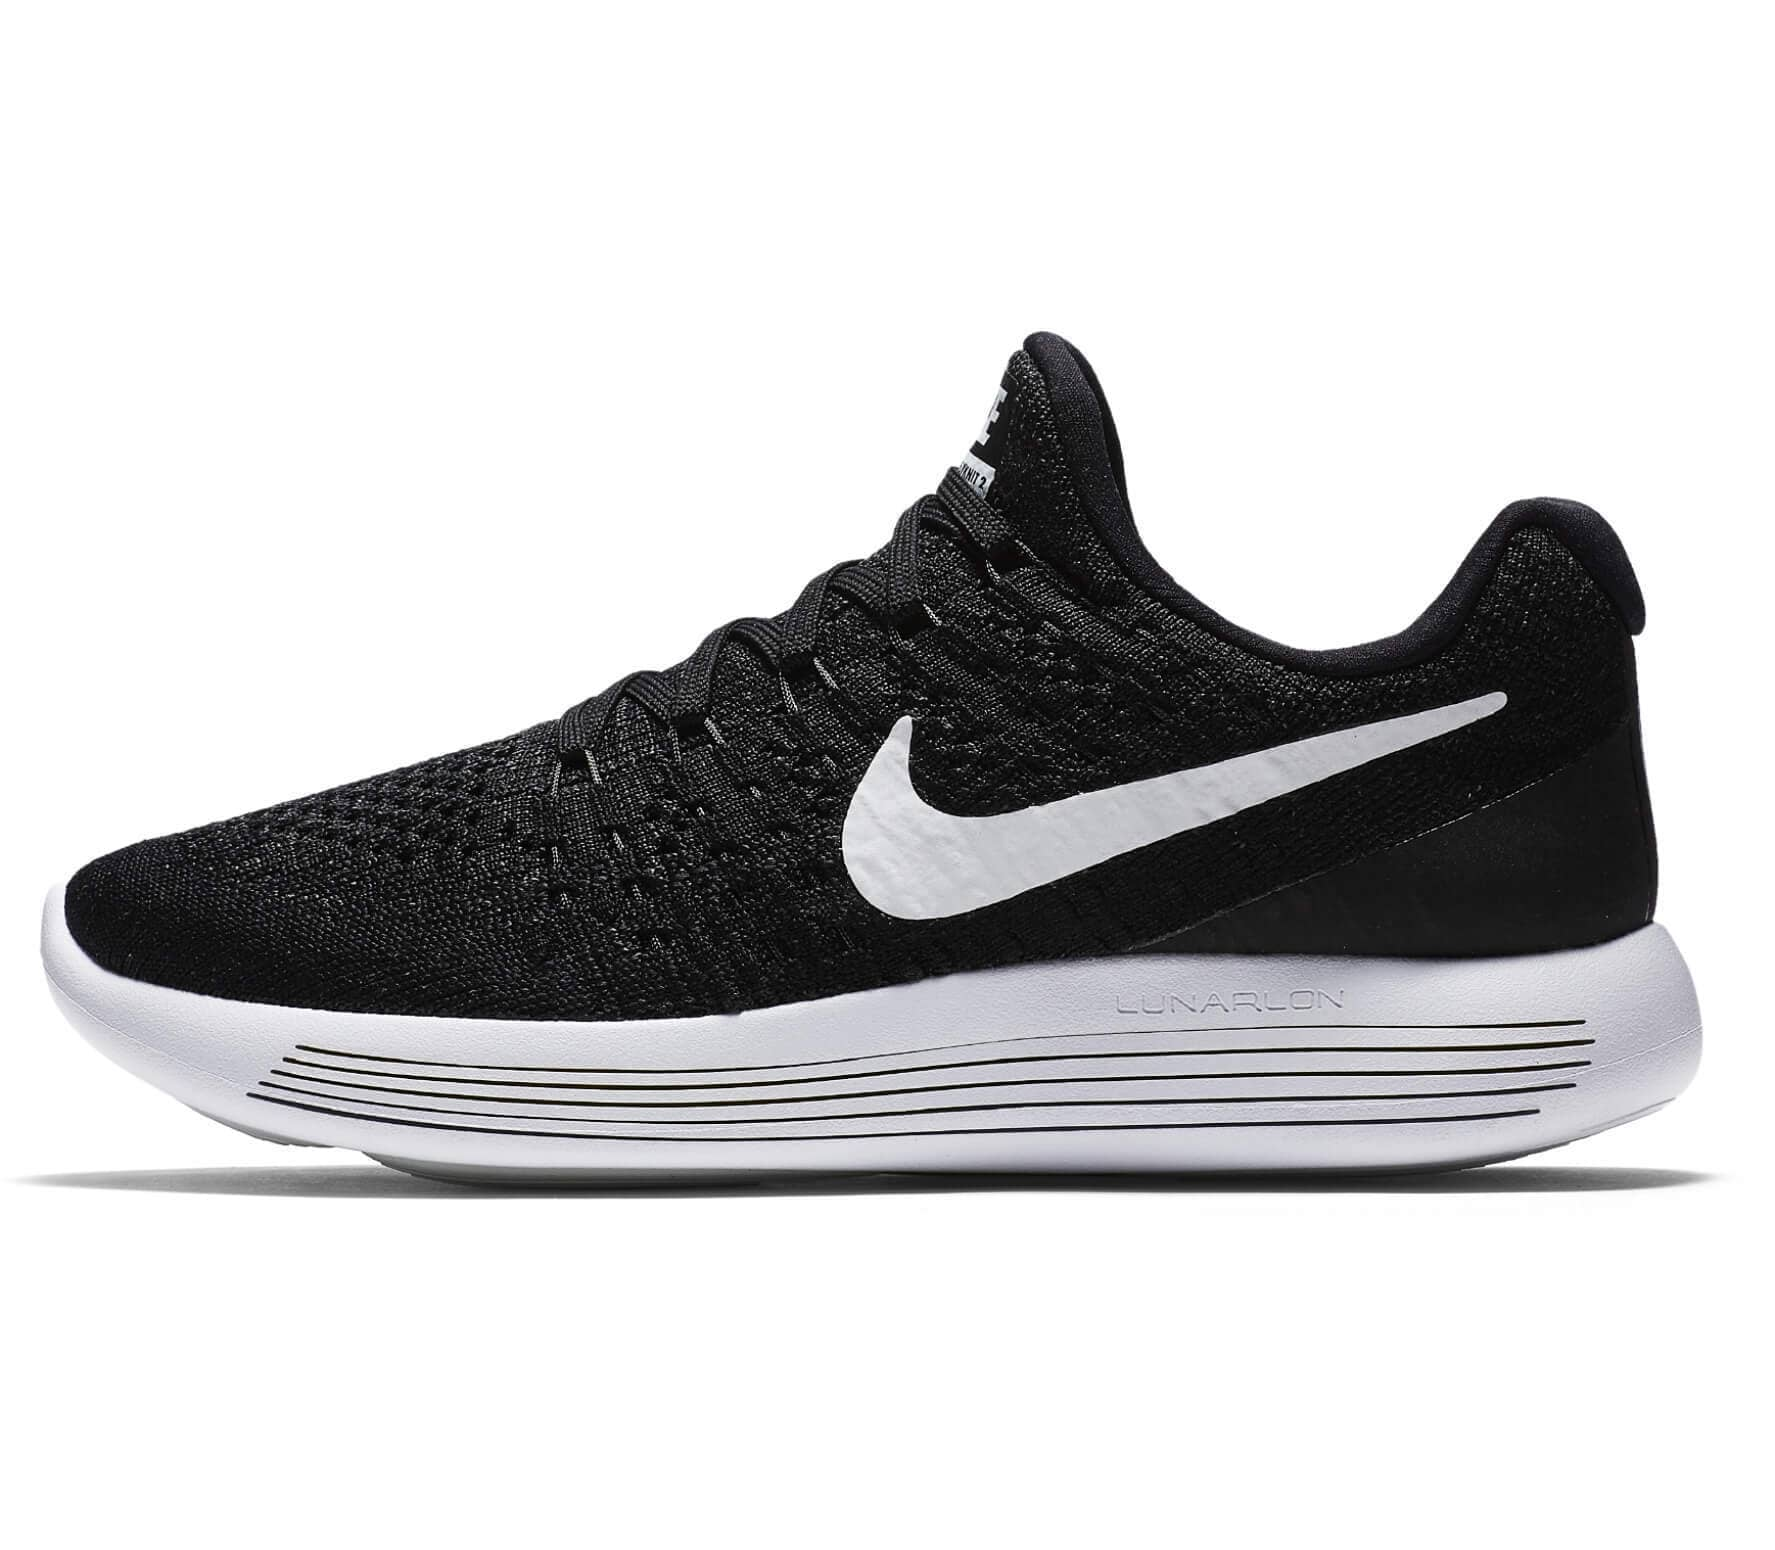 huge discount ddfe5 8d474 Nike - Lunar Epic Low Flyknit 2 women s running shoes (black white)